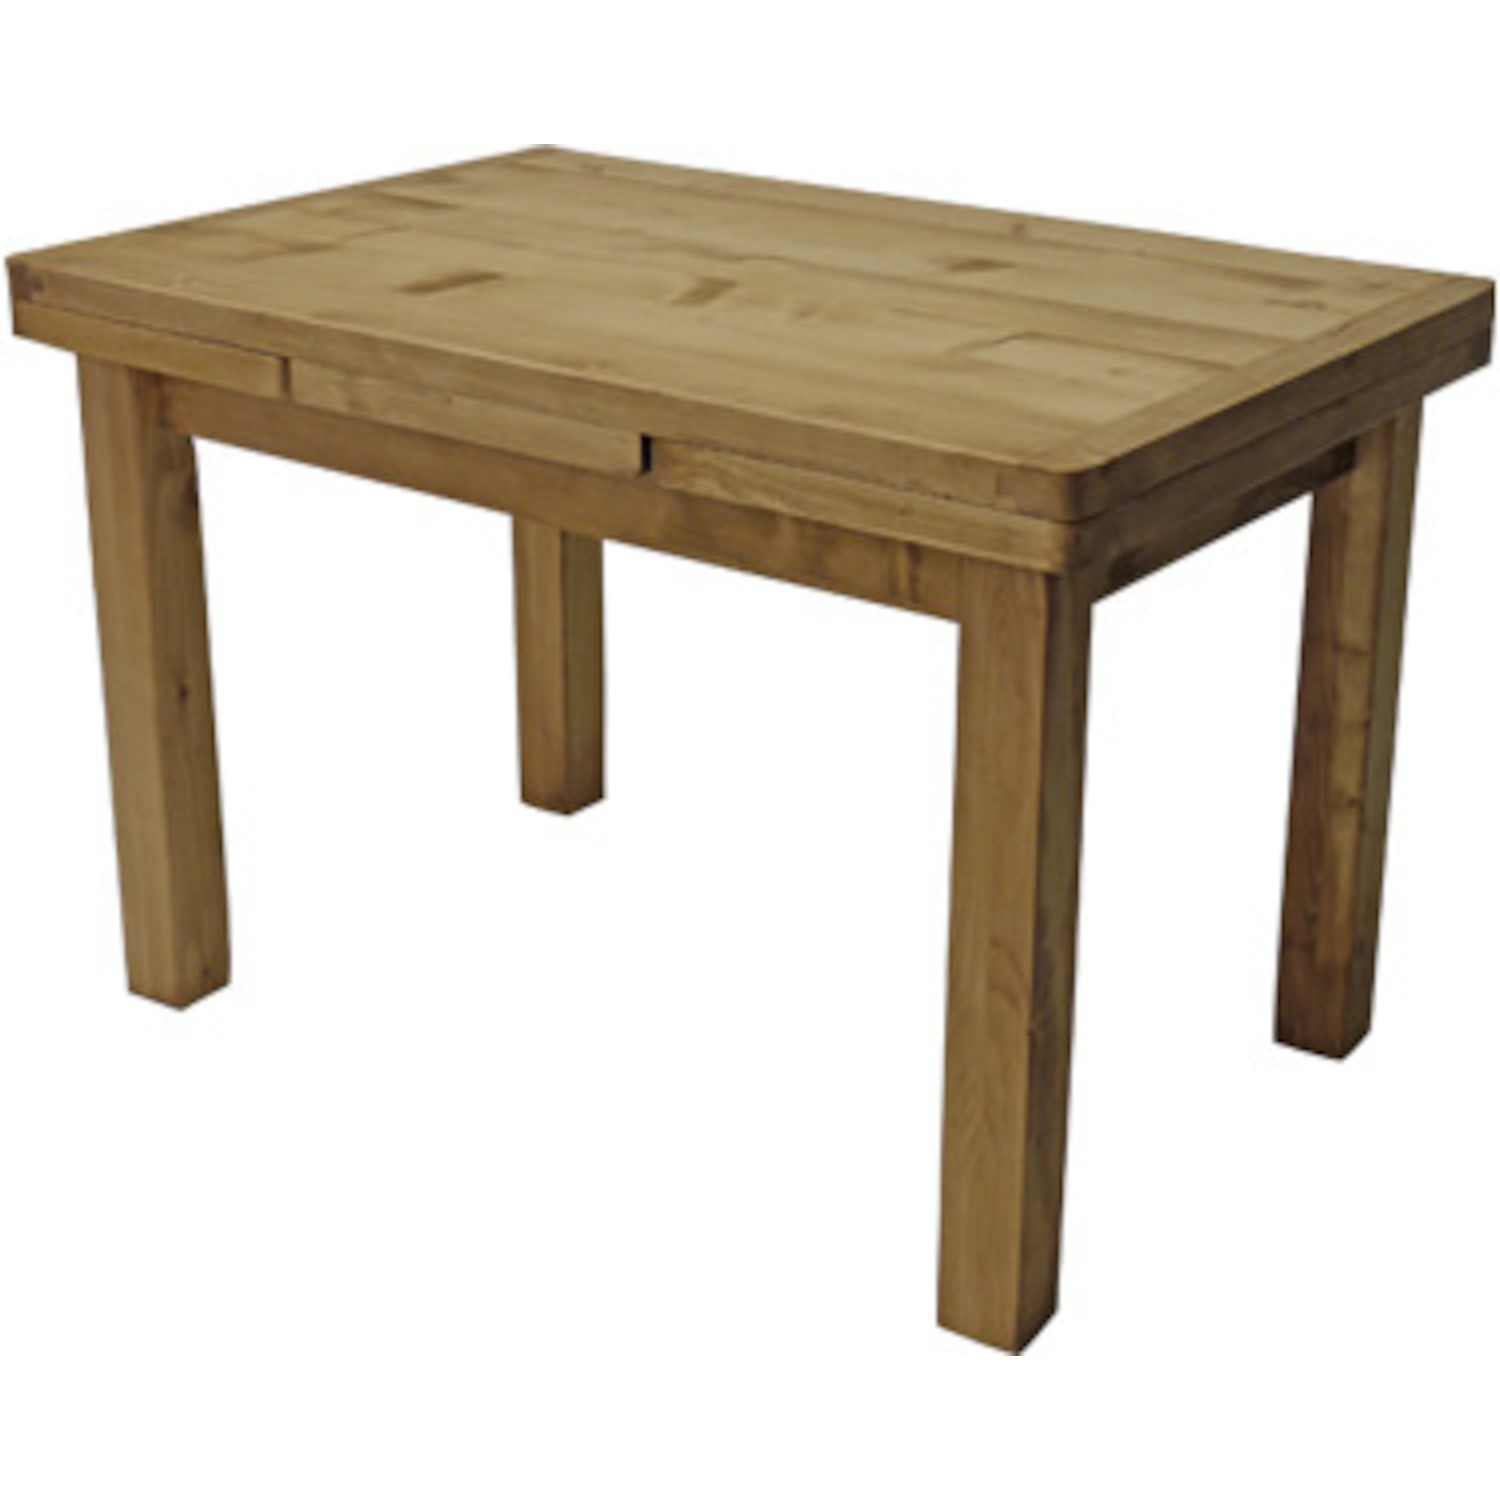 Table avec 2 allonges l italienne for Table sejour avec rallonge